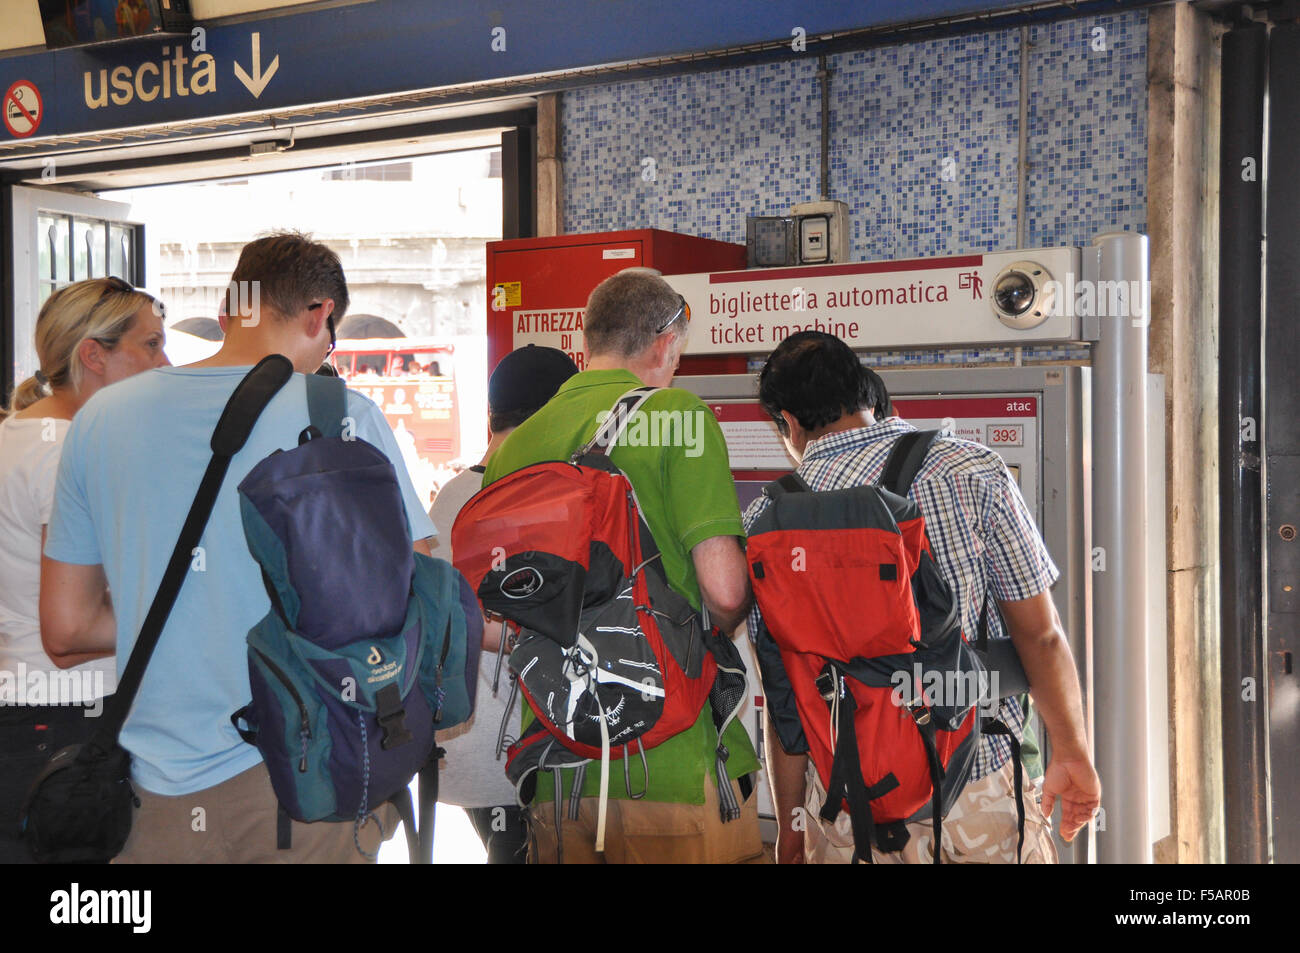 Rome metro - Tourists of different nationalities trying to use the ticket machine in the Rome metro underground - Stock Image